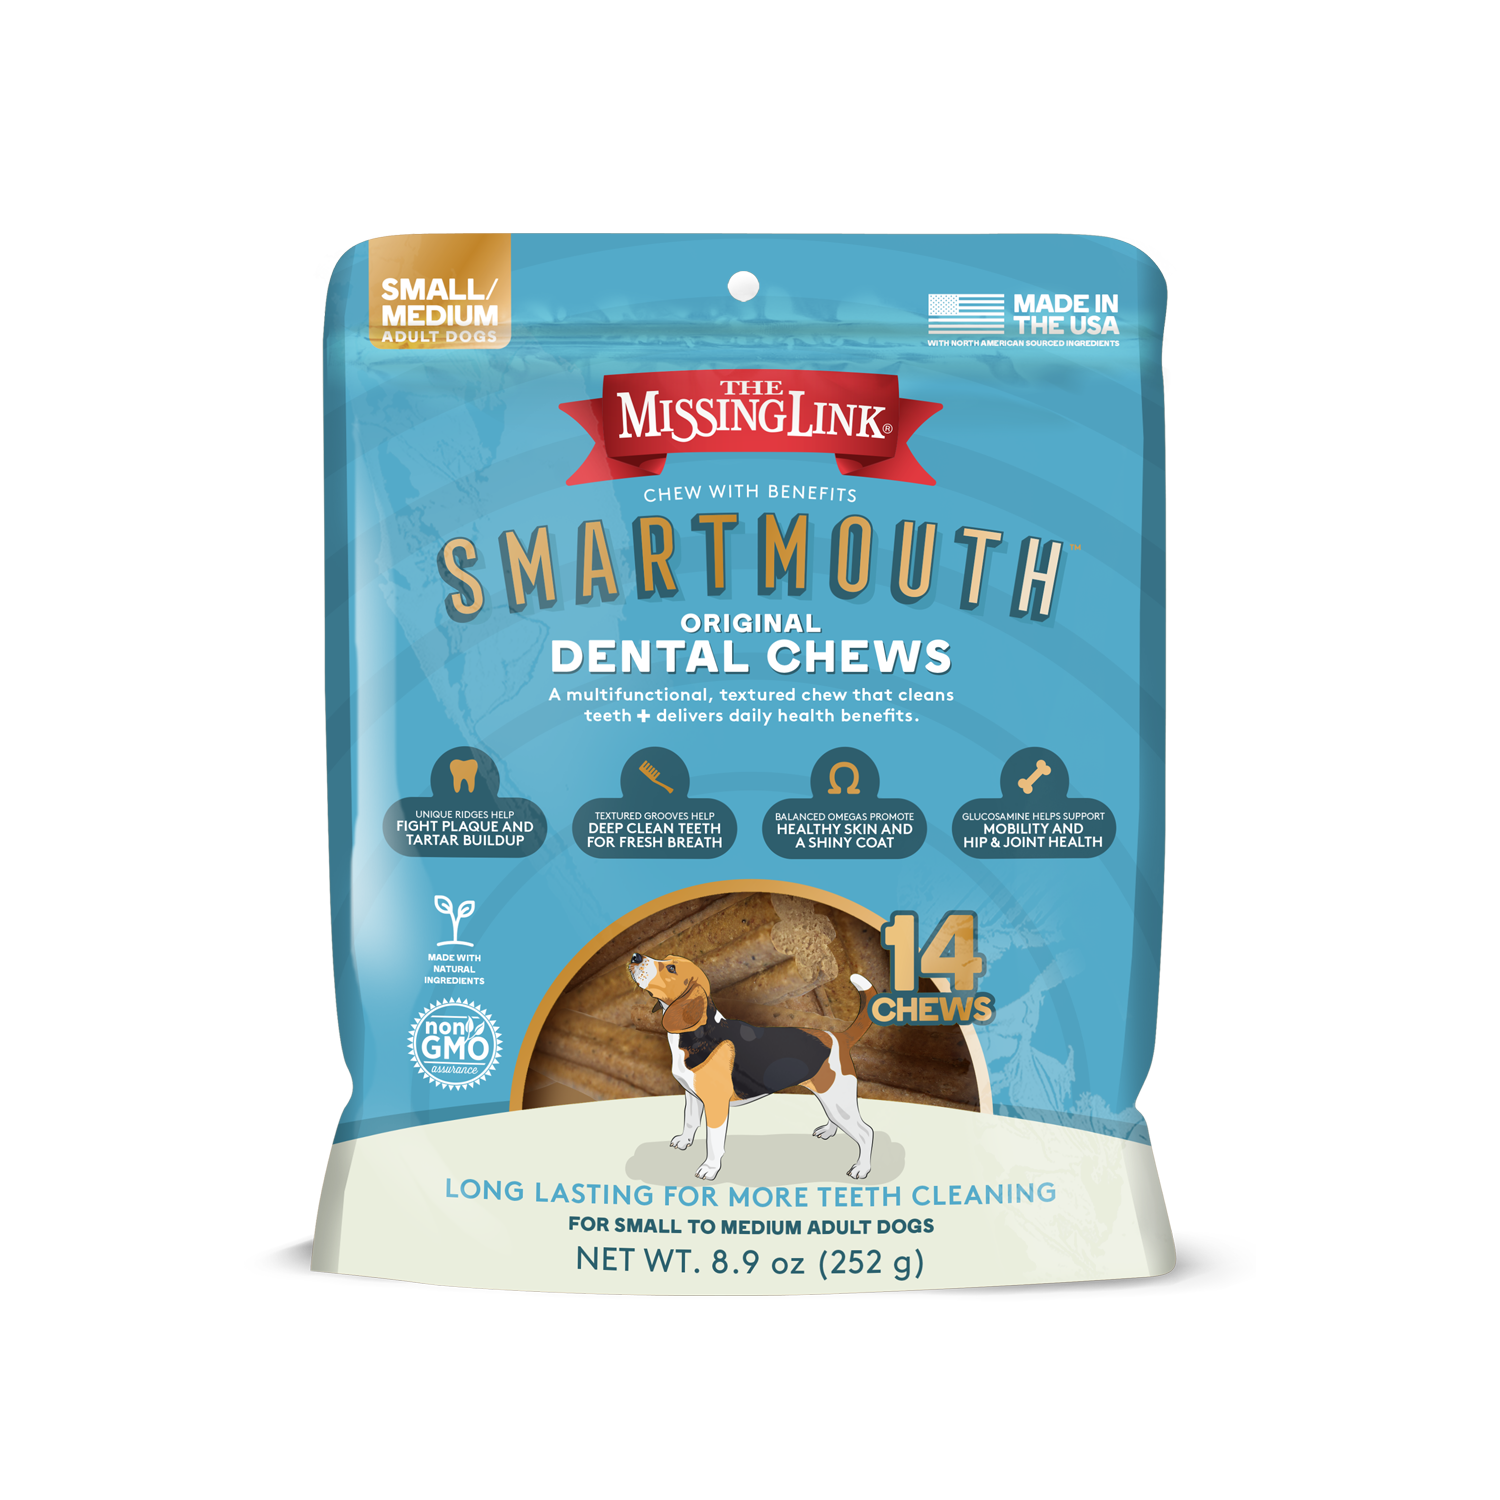 Missing Link Missing Link Smartmouth Dental Chew 14ct S/M Product Image